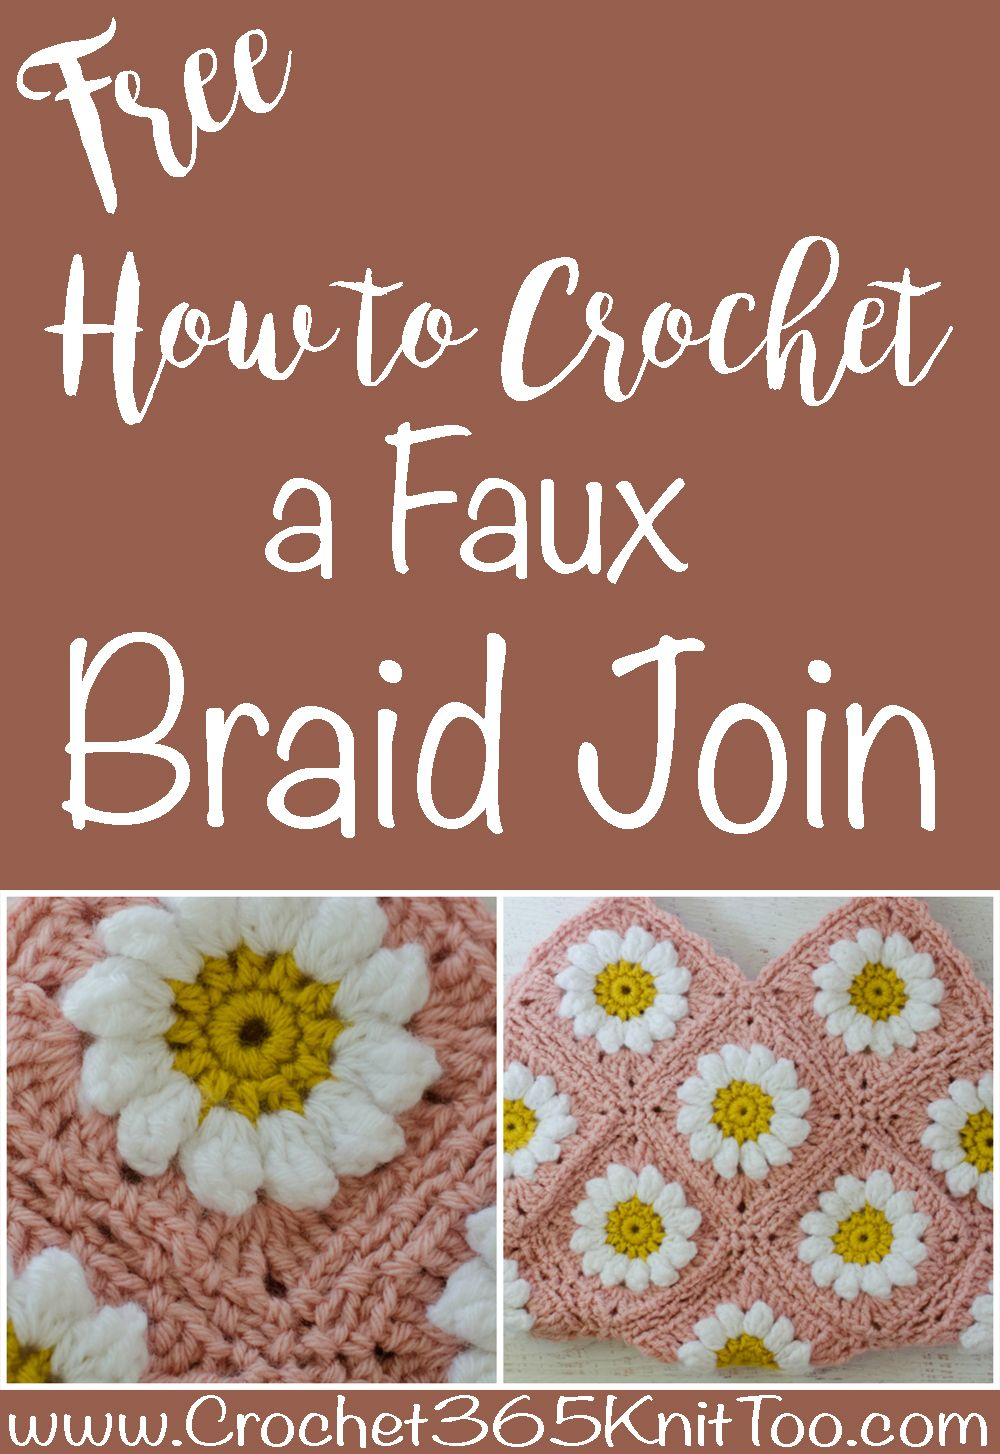 Faux Braid Join - Daisy Mae Bag CAL Part 2 | Crochet > Stitchionary ...